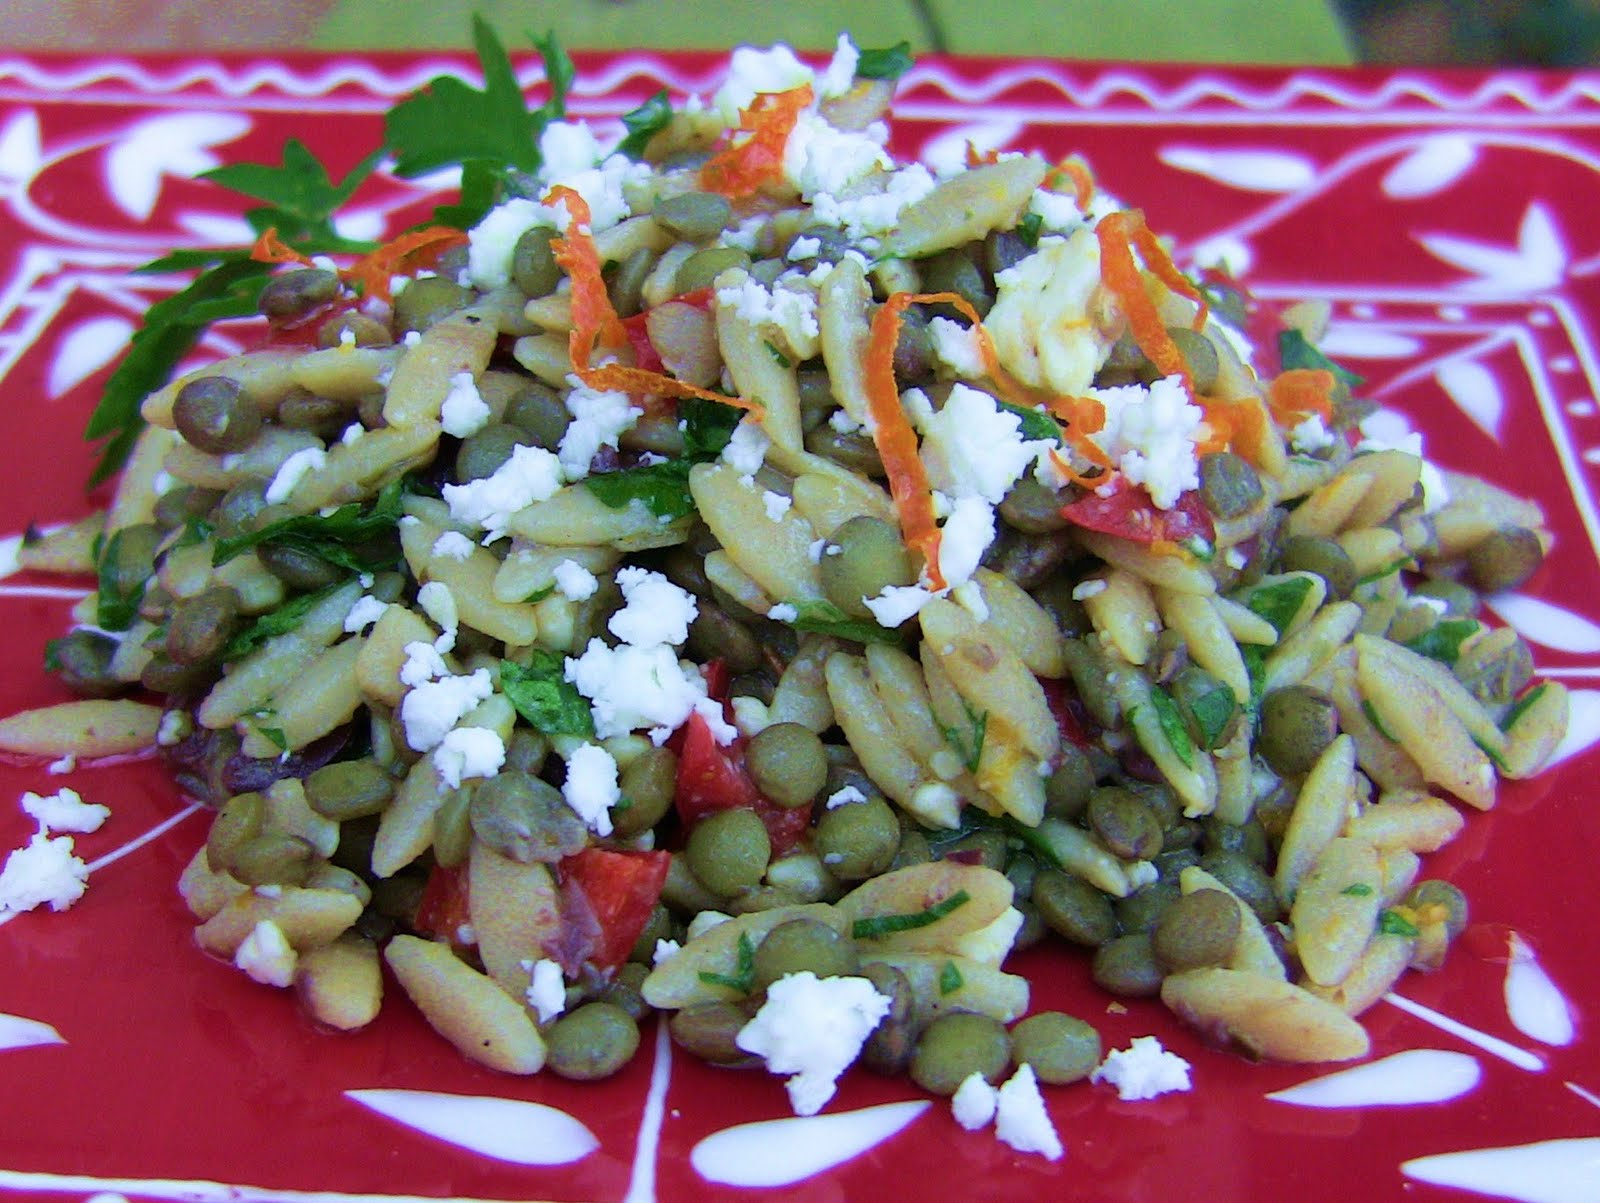 Orzo salad recipe to feed a party - Choosing and cooking healthy food